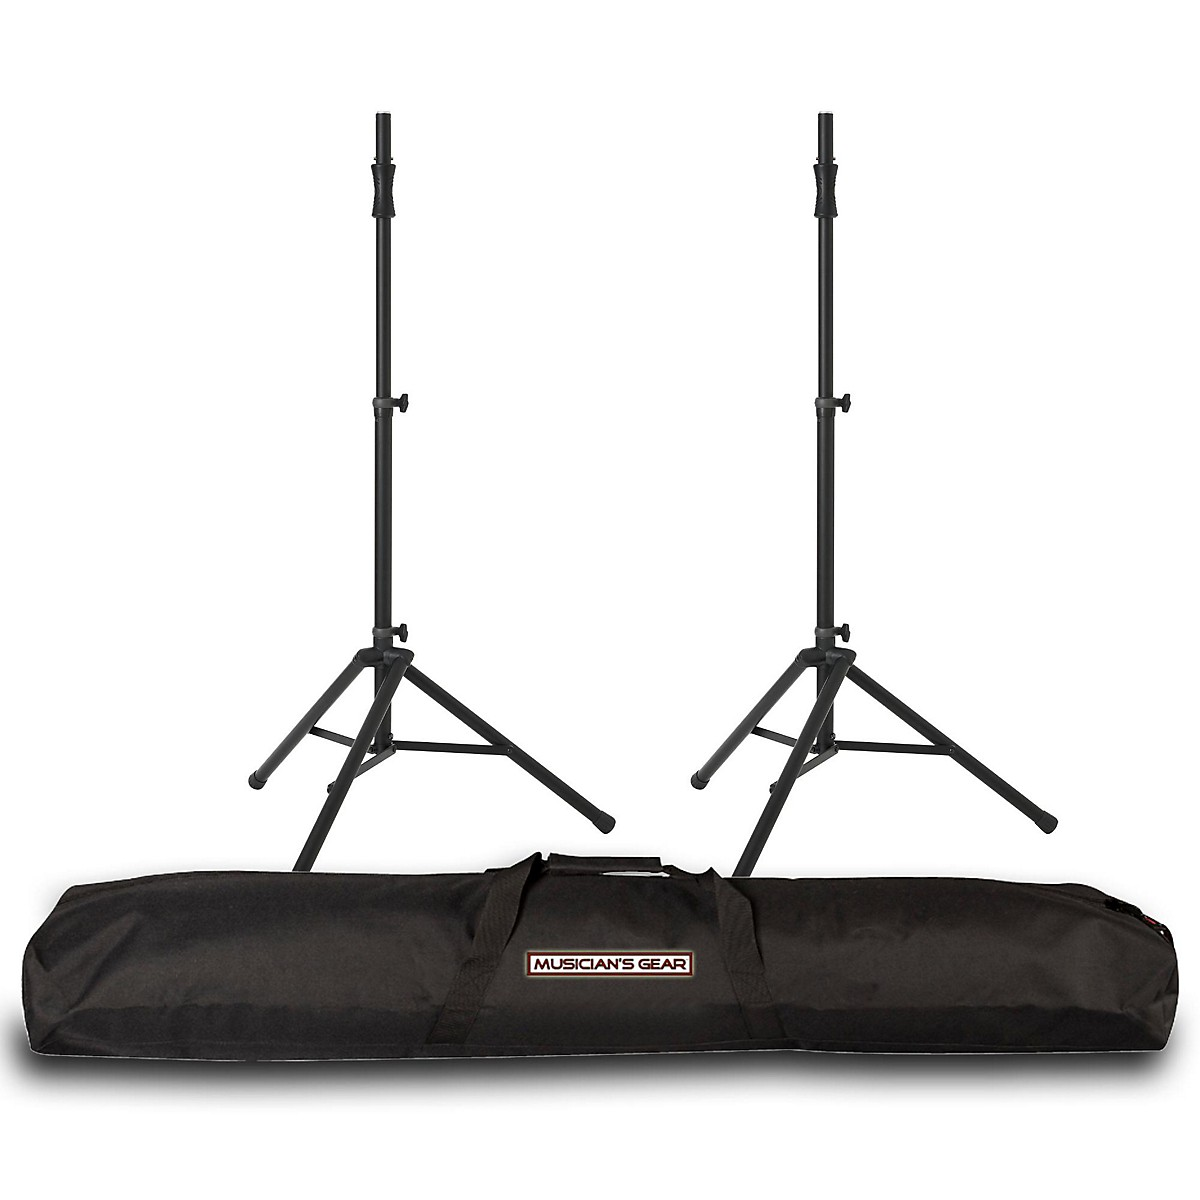 Ultimate Support Ultimate Support TS-100 Speaker Stand Pair w/ Musicians Gear Speaker Stand Bag